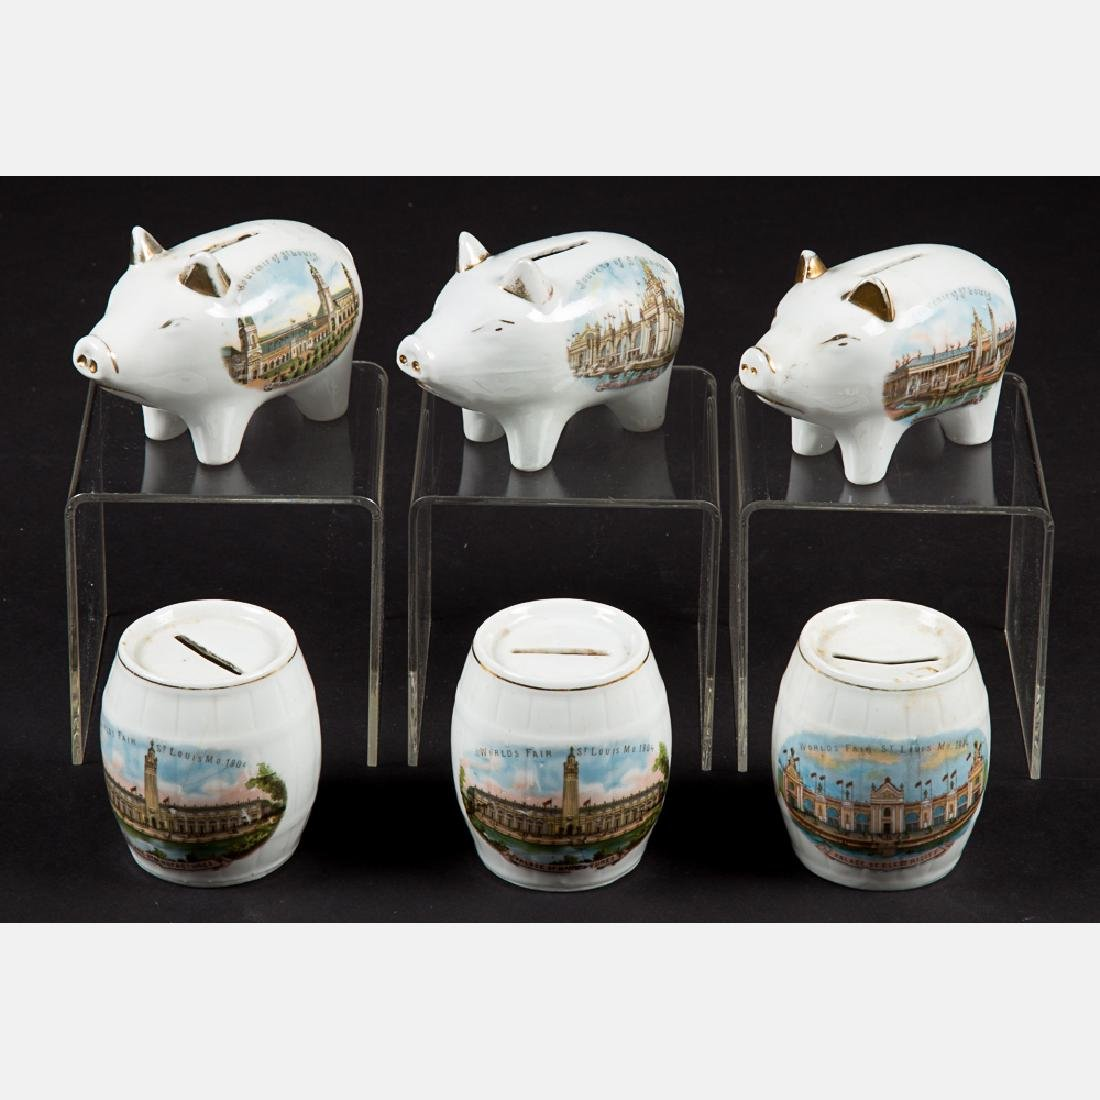 A Group of Six Porcelain Barrel and Pig Form Still